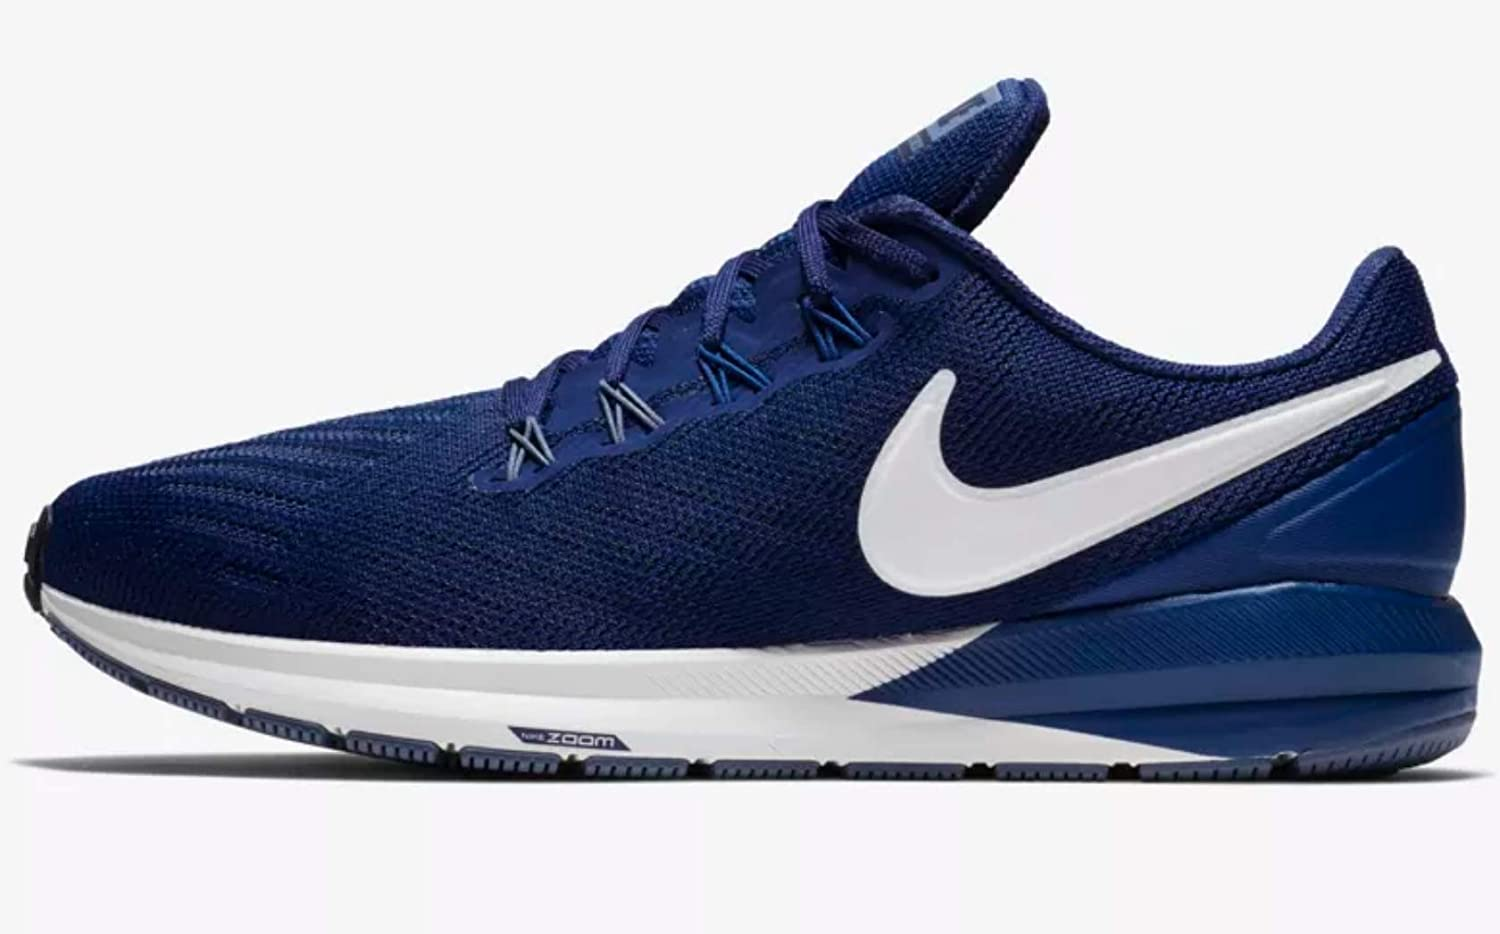 Nike Men's Training Shoes Blue (Blue Void/Vast Grey-gym Blue 404)